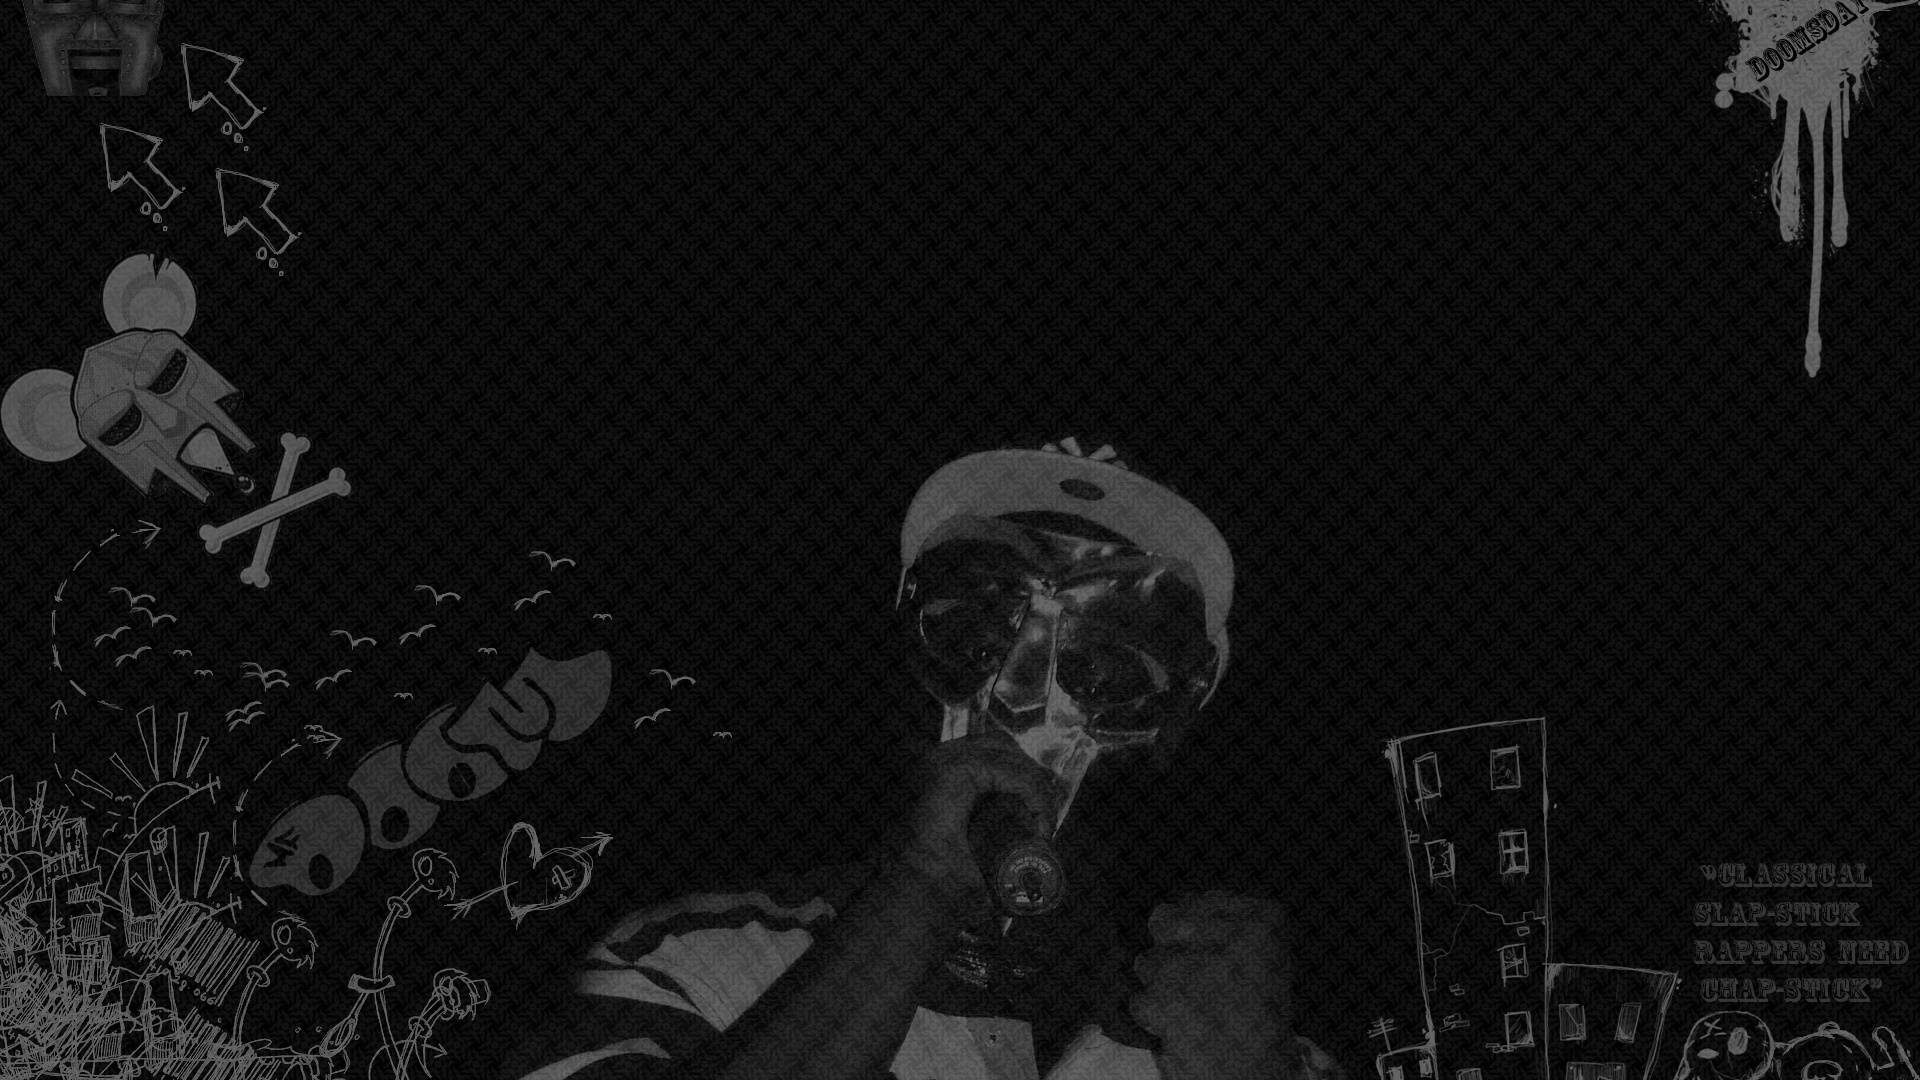 mf doom wallpaper 9 - photo #10